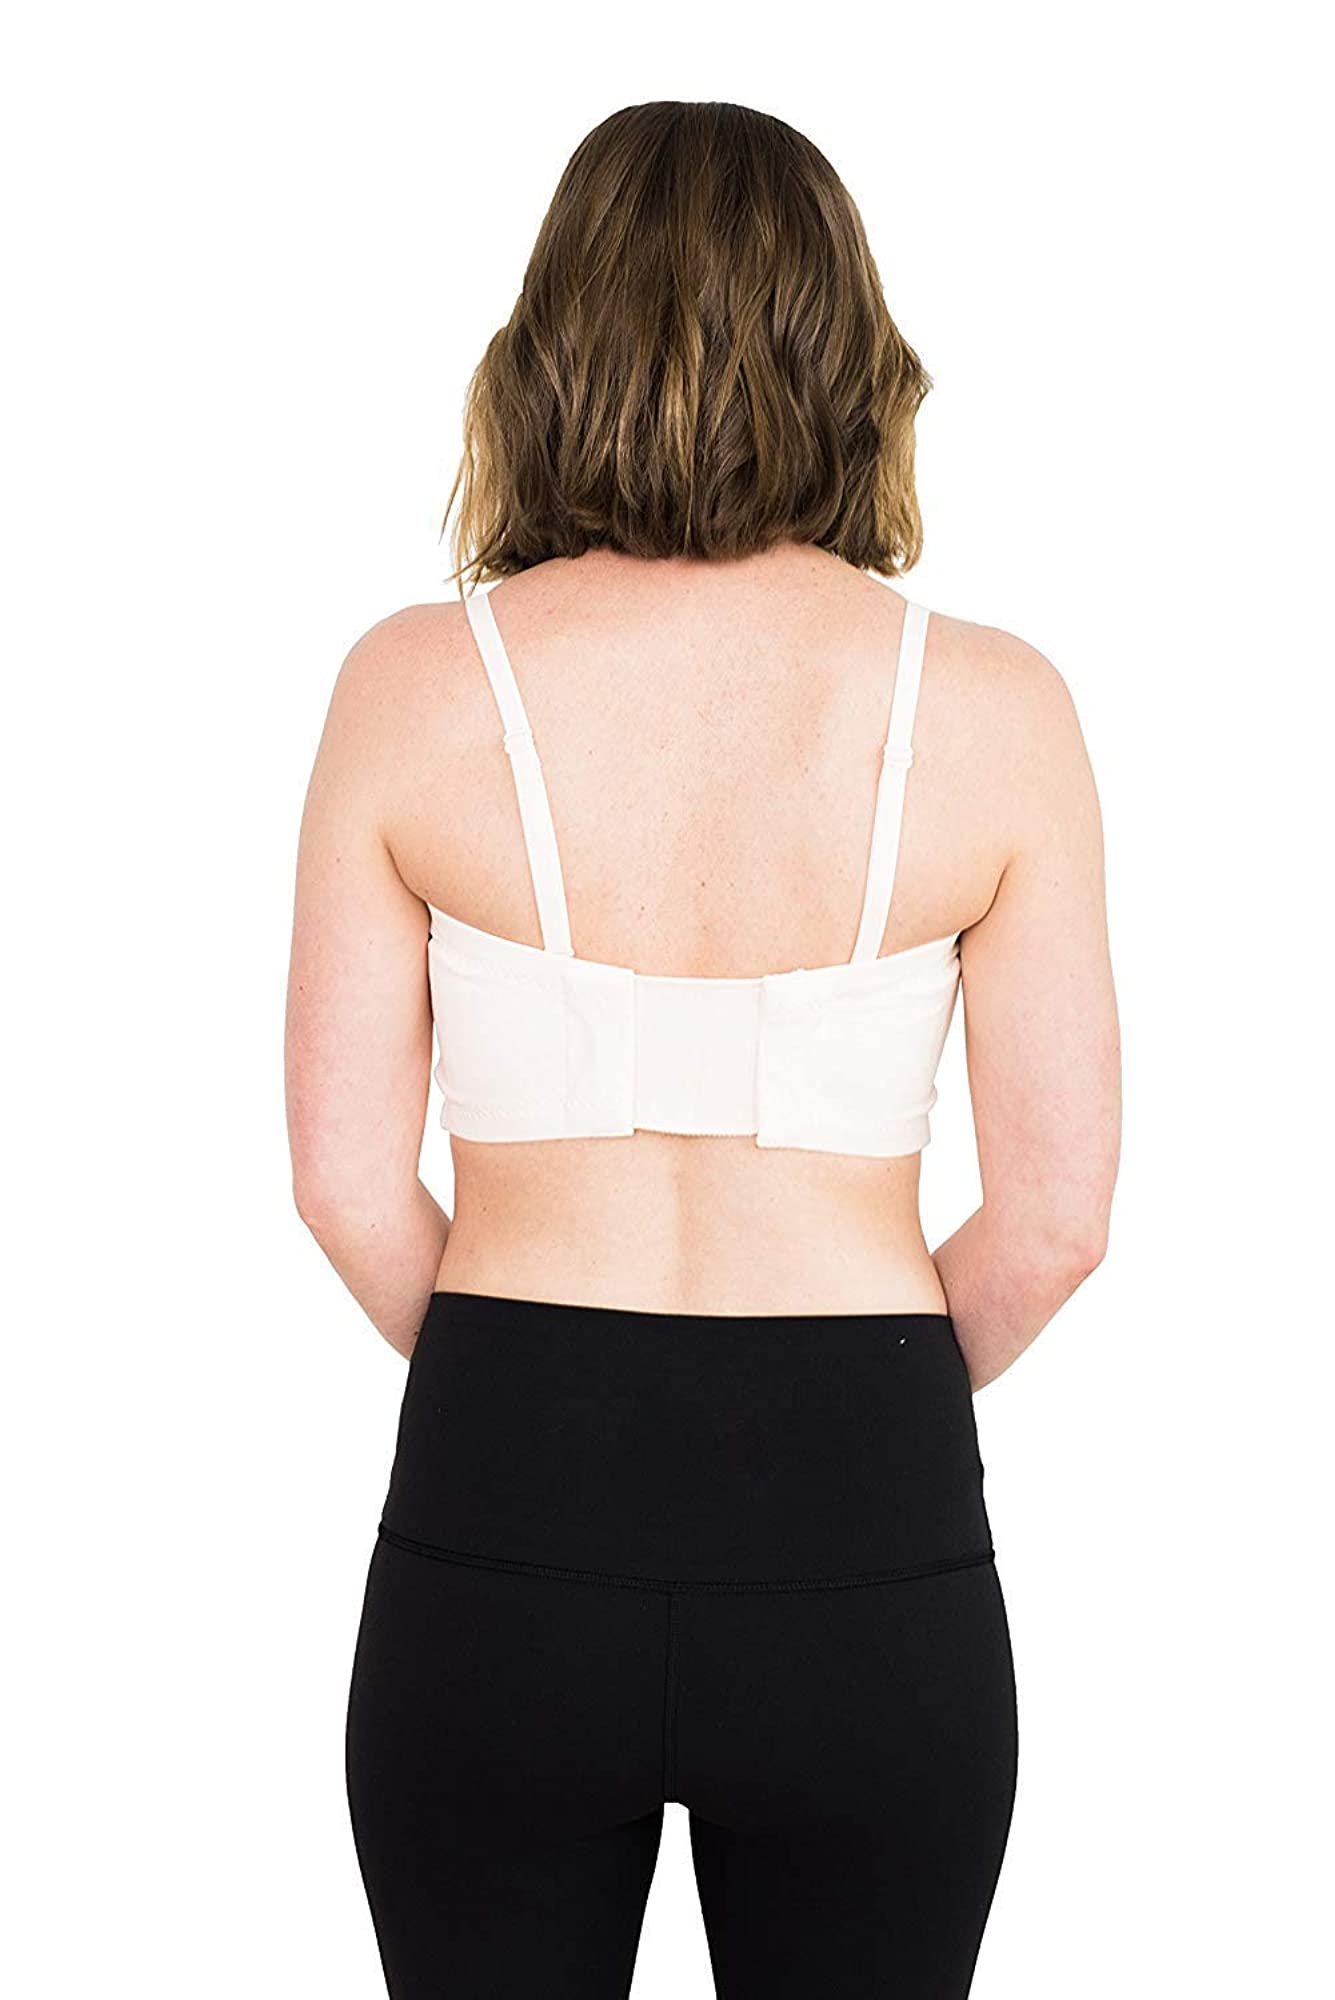 Comfortable, Adjustable, Supportive Hands-Free Pumping Bra